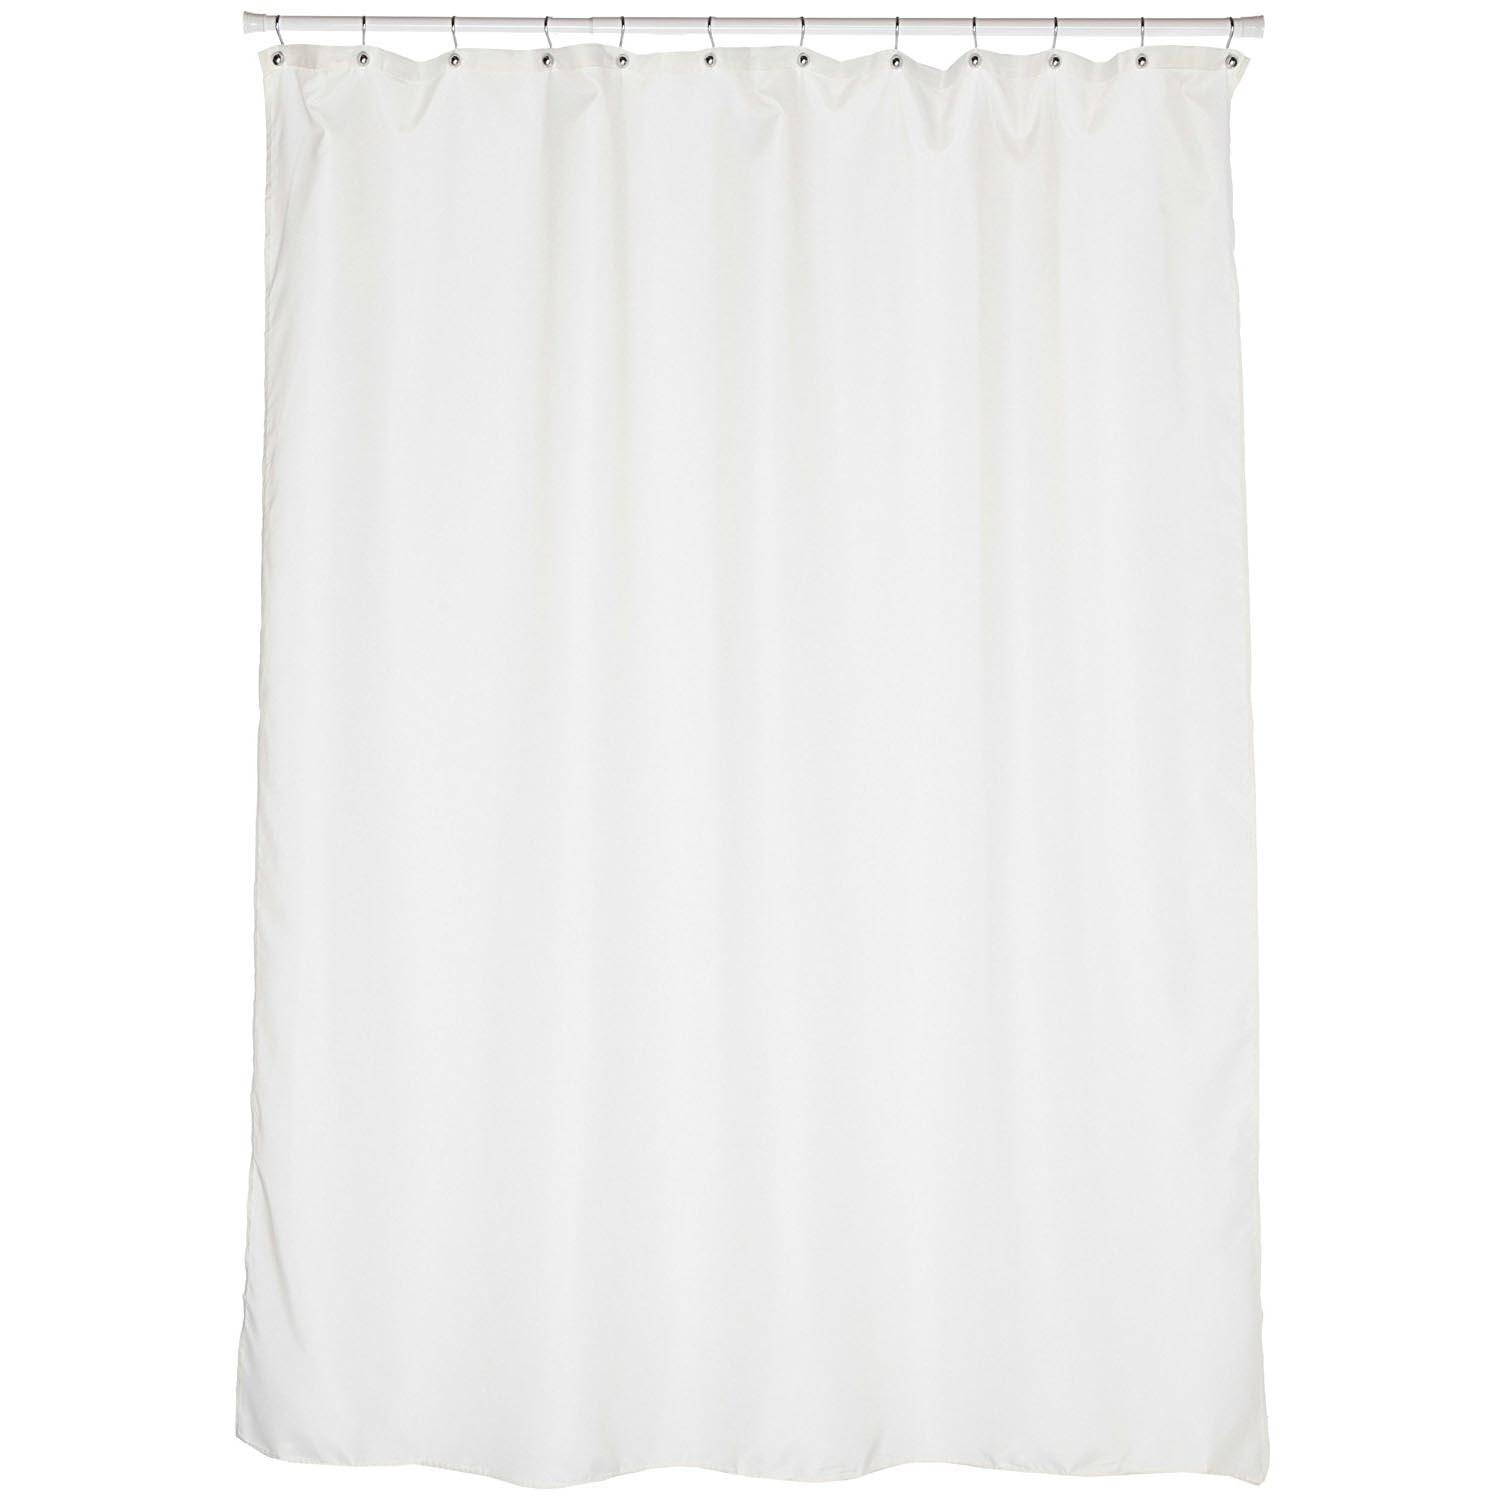 fabric extra long 84 ivory shower curtain liner